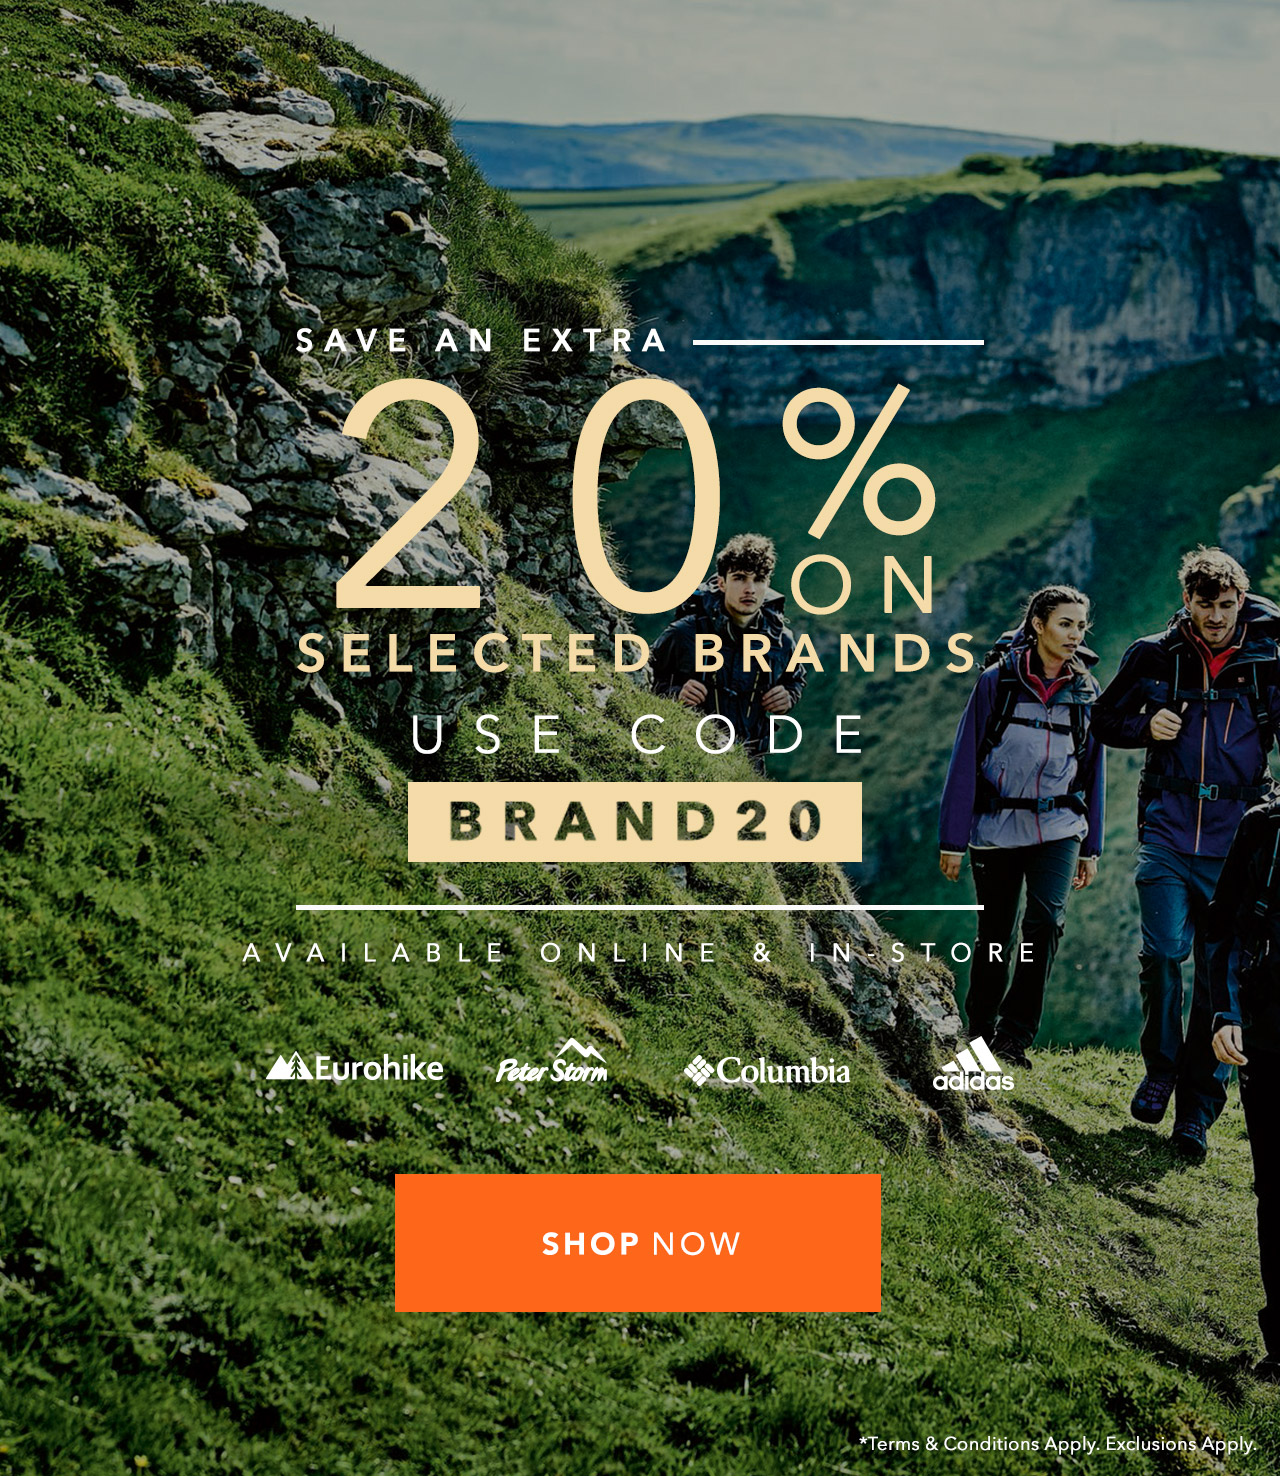 An extra 20 % Off Selected Brands - Use Code Brand20